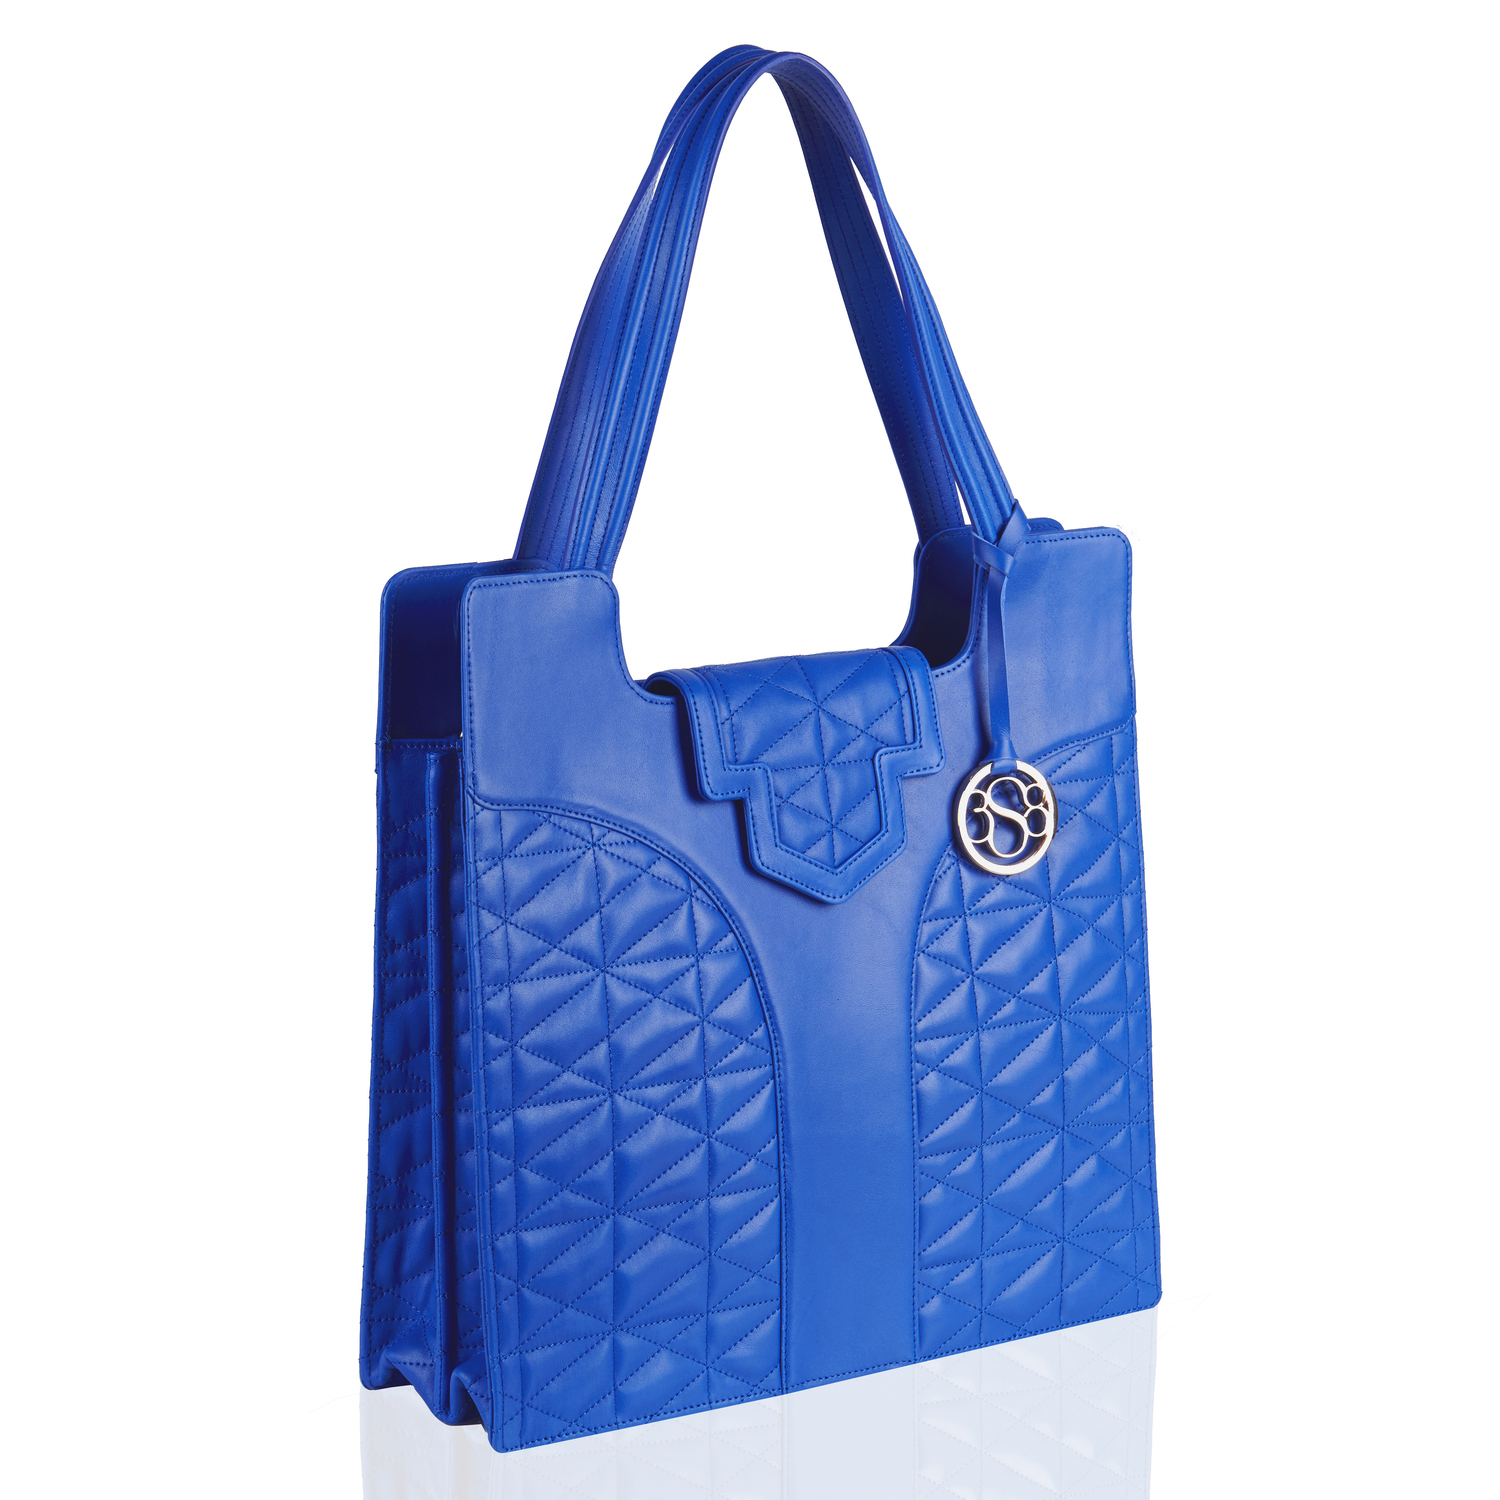 LUXURIOUS LAPIS - $595.00